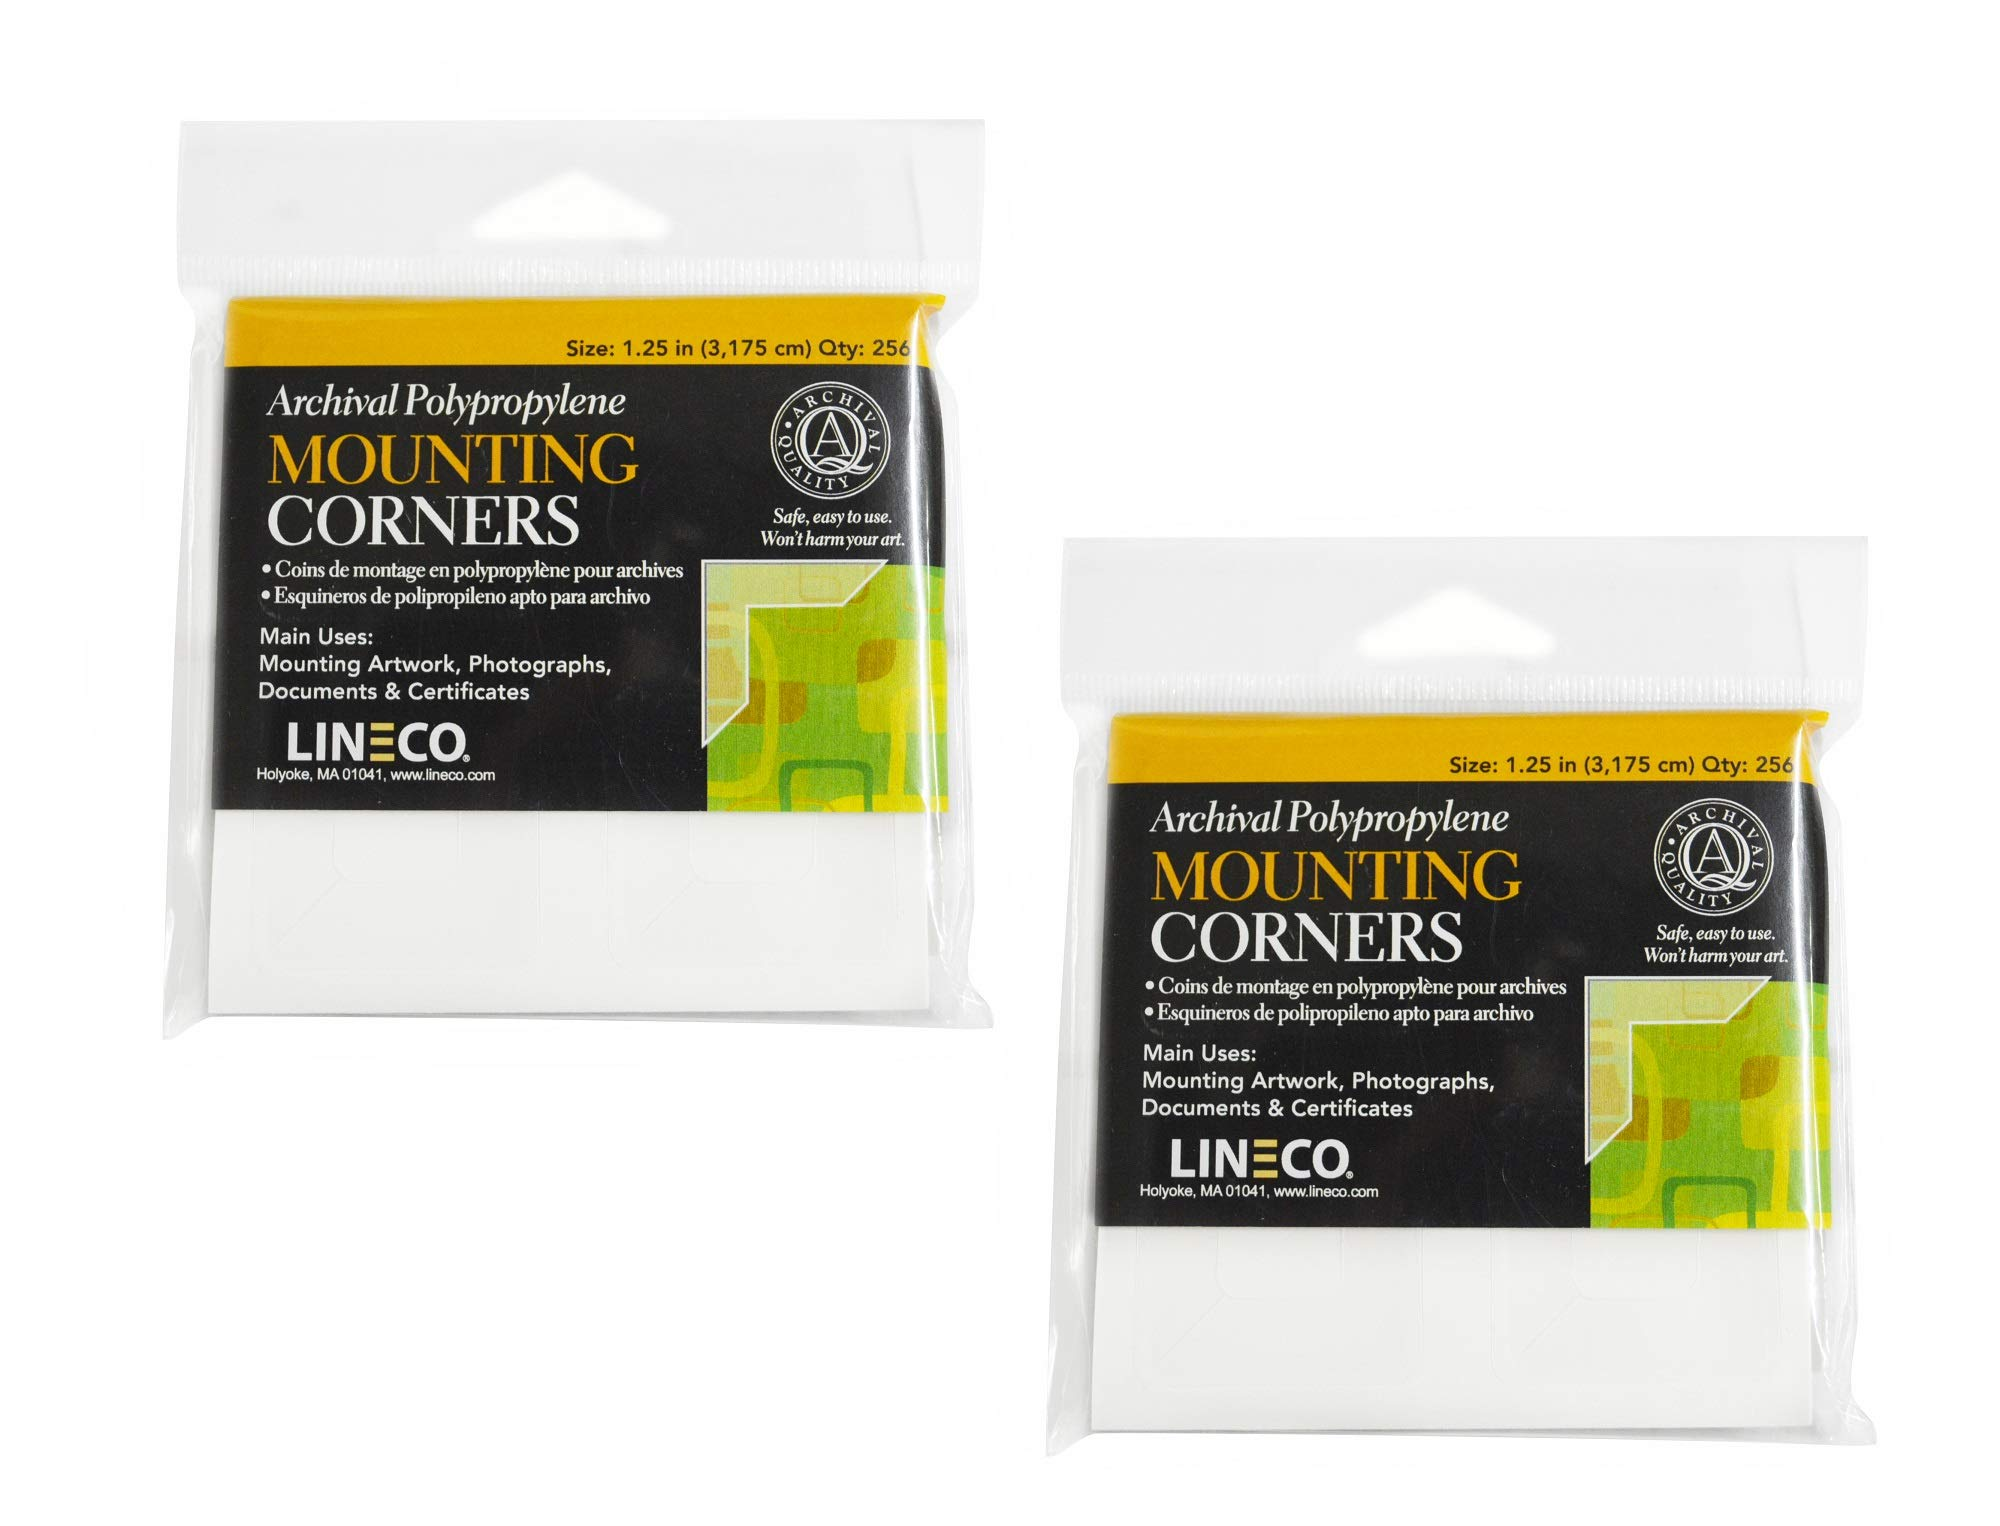 Lineco Self-Adhesive Polypropylene Mounting Corners - 1.25'' Clear (256/Pkg.) Full View, Pack of 2